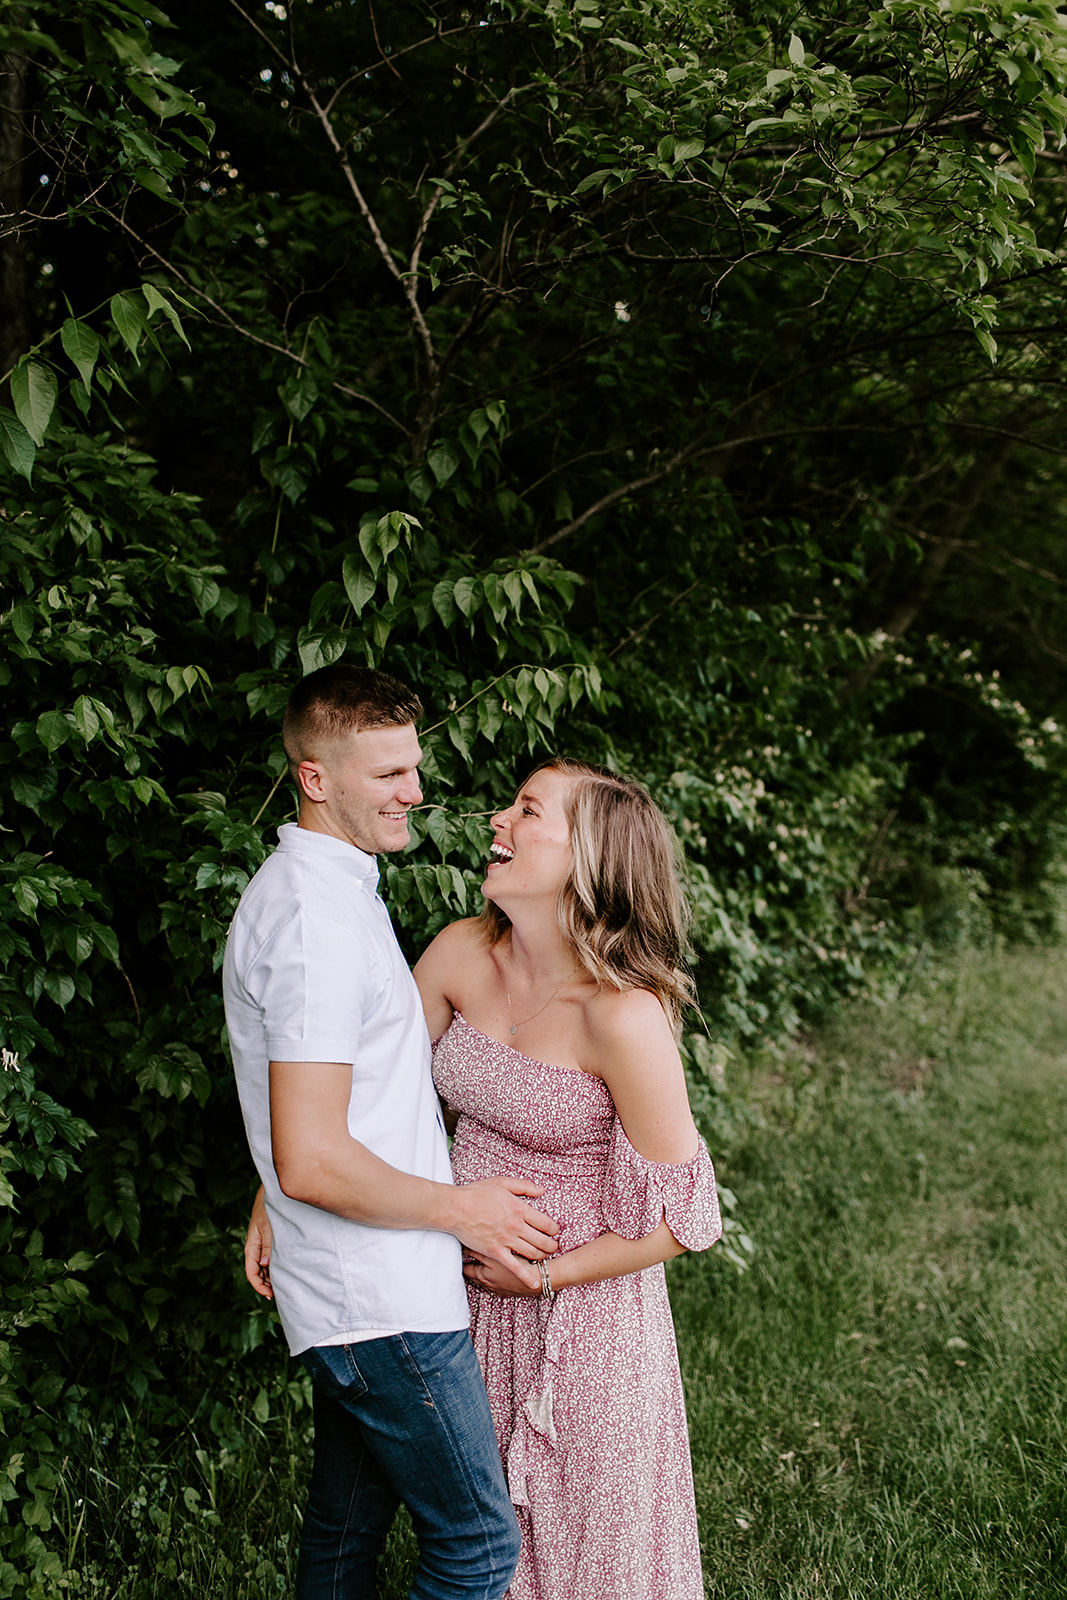 Casie_and_Sean_Maternity_session_at_cool_creek_park_in_Carmel_Indiana_by_Emily_Wehner-204.jpg